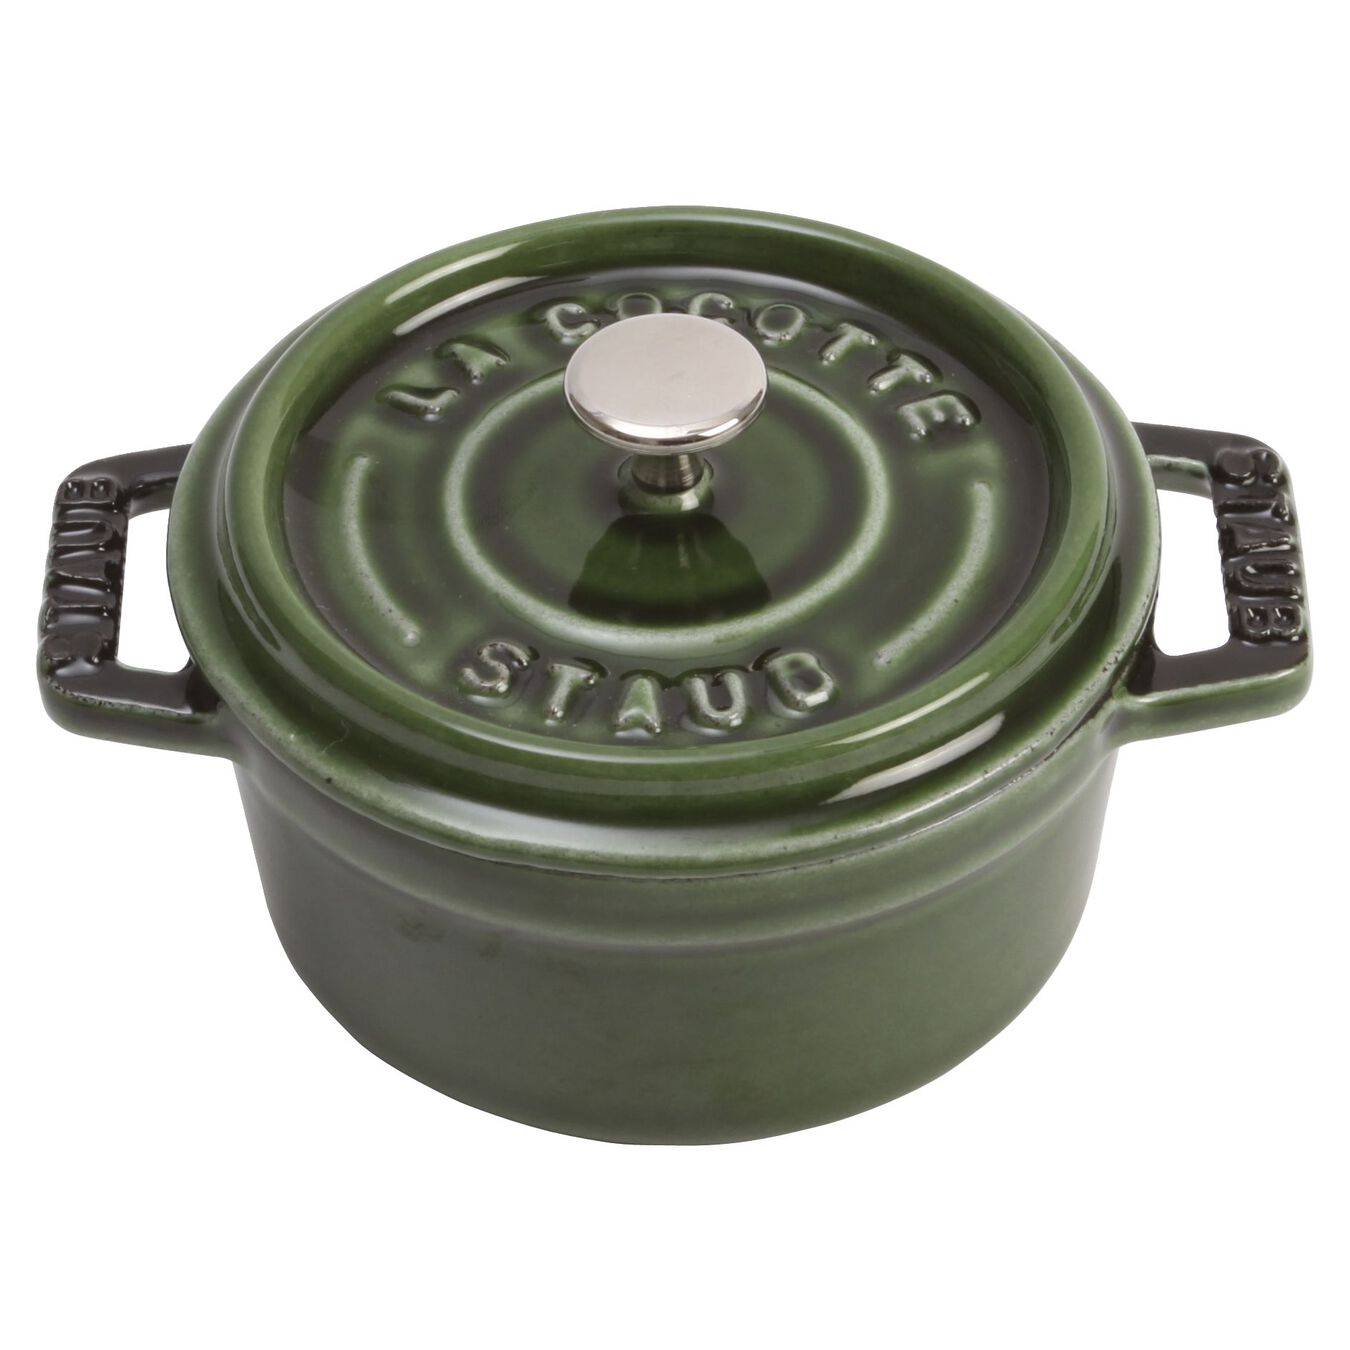 250 ml Cast iron round Mini Cocotte, Basil-Green,,large 1